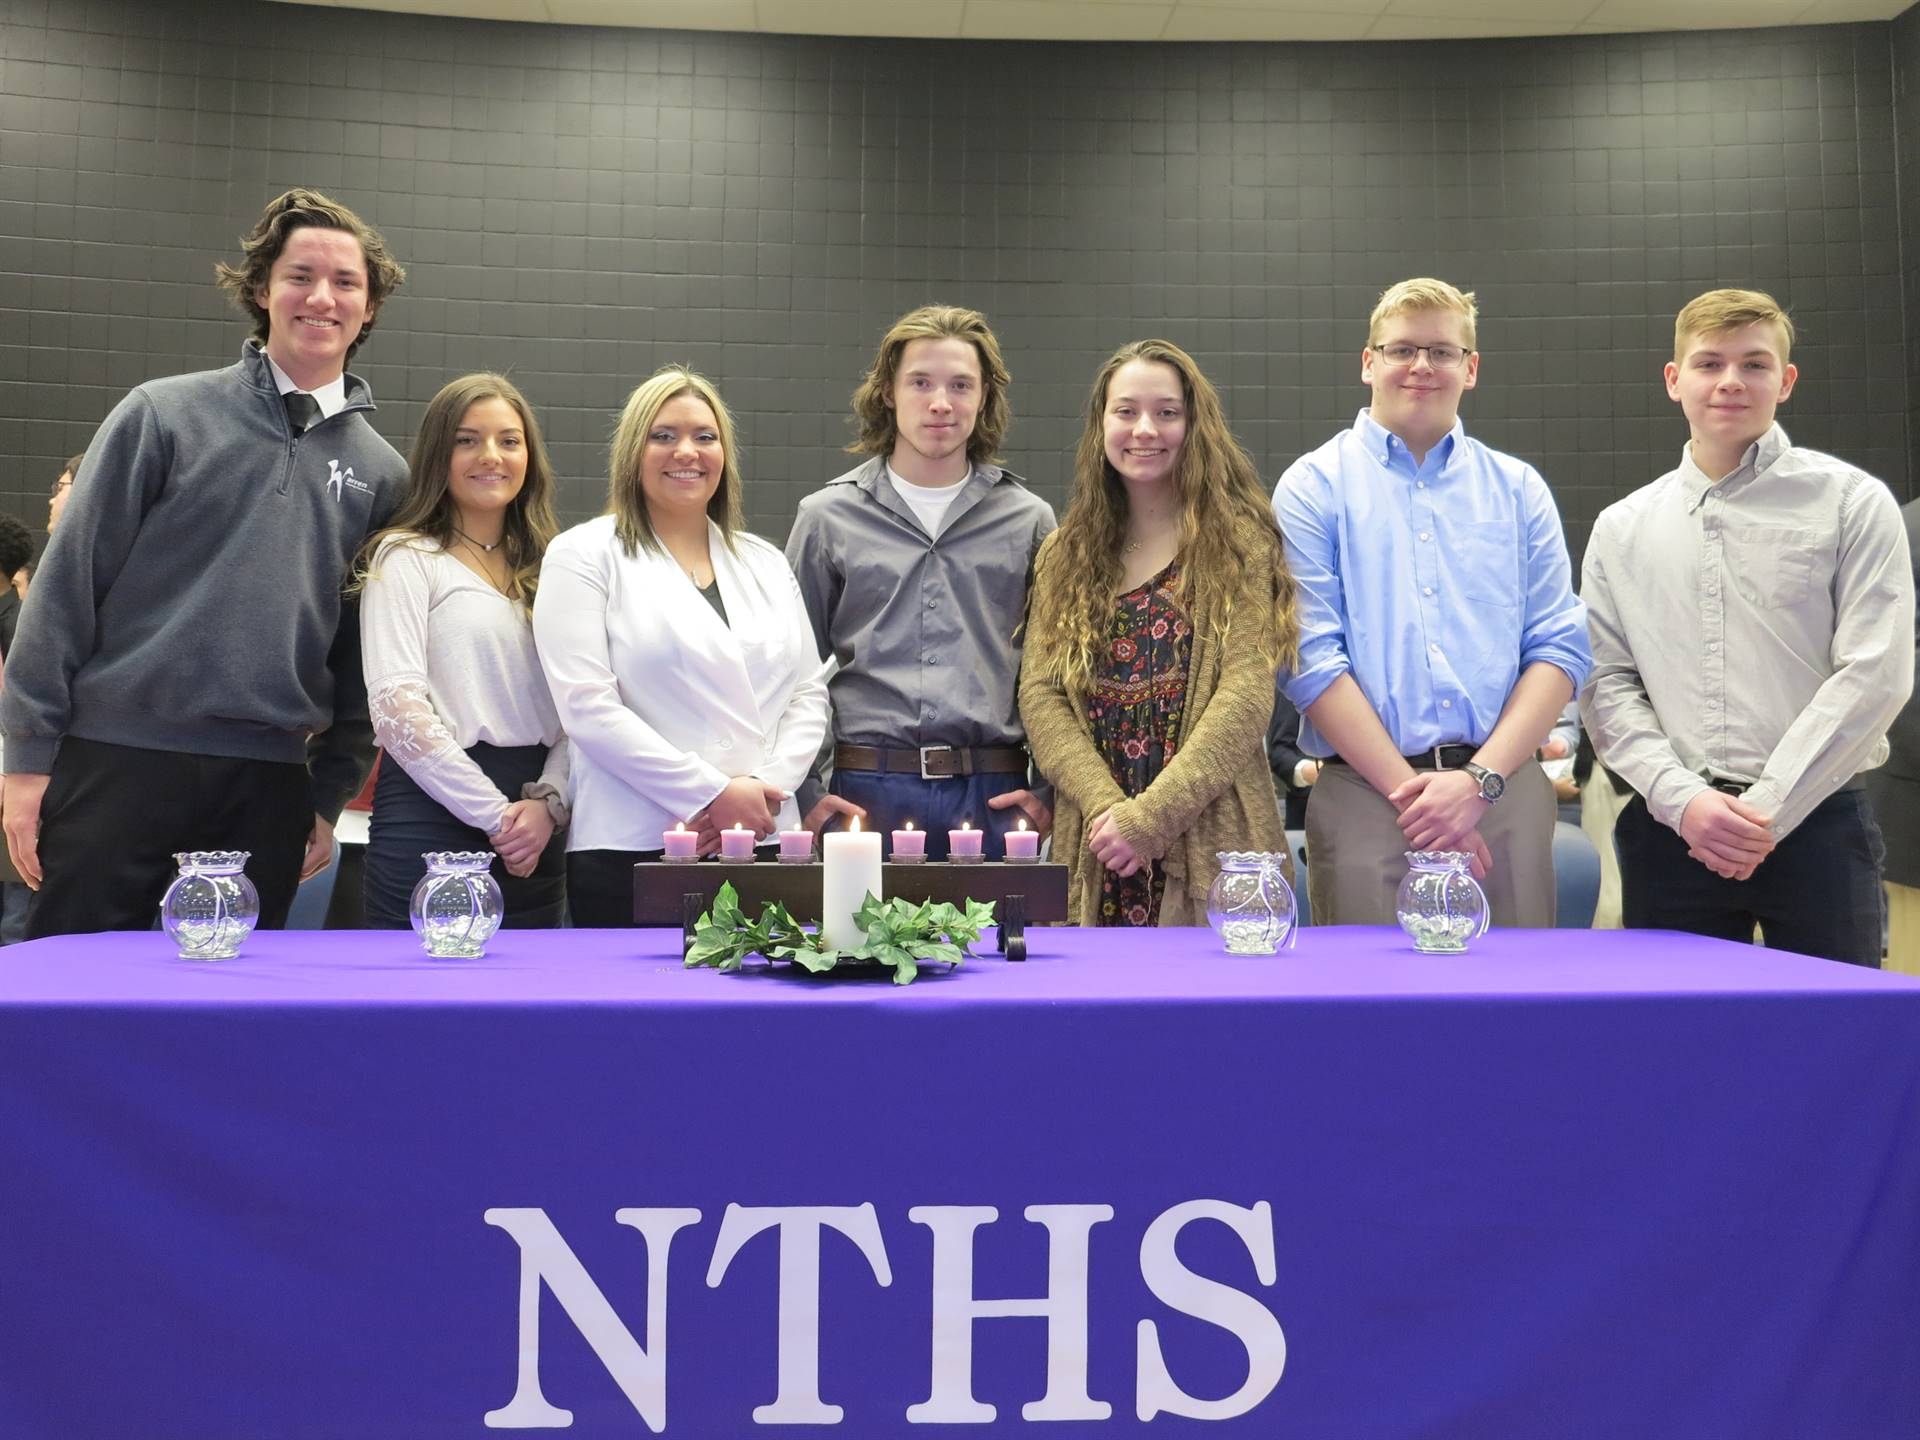 NTHS officers